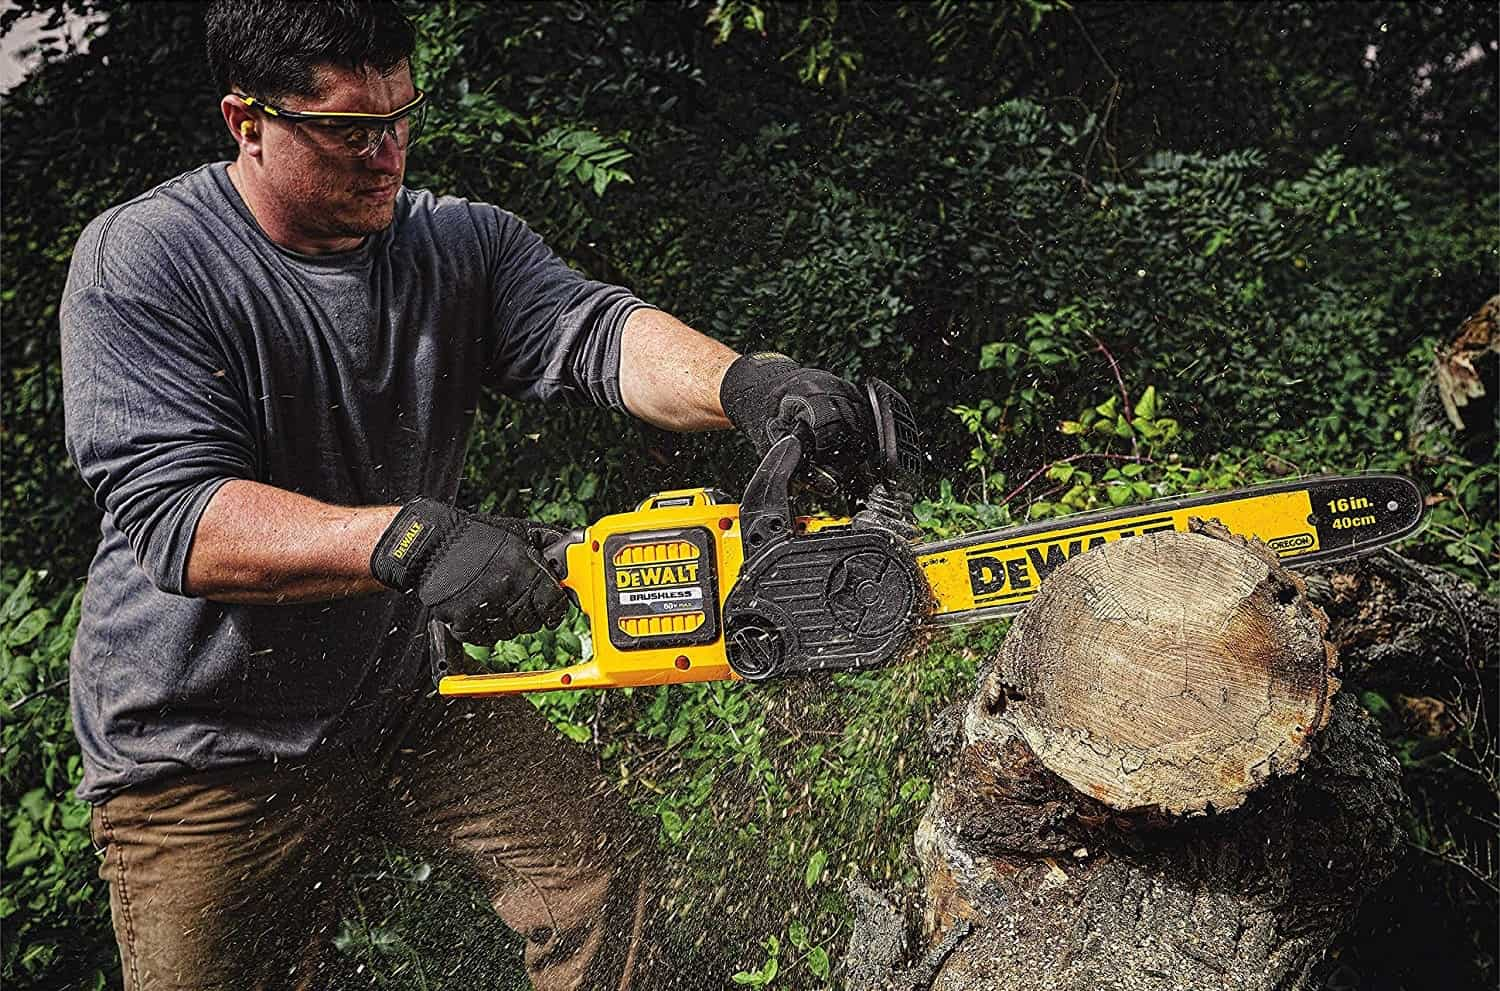 https://solidguides.com/wp-content/uploads/2018/10/DeWalt-FlexVolt-DCCS670B-60V-Max-Cordless-Chainsaw.jpg